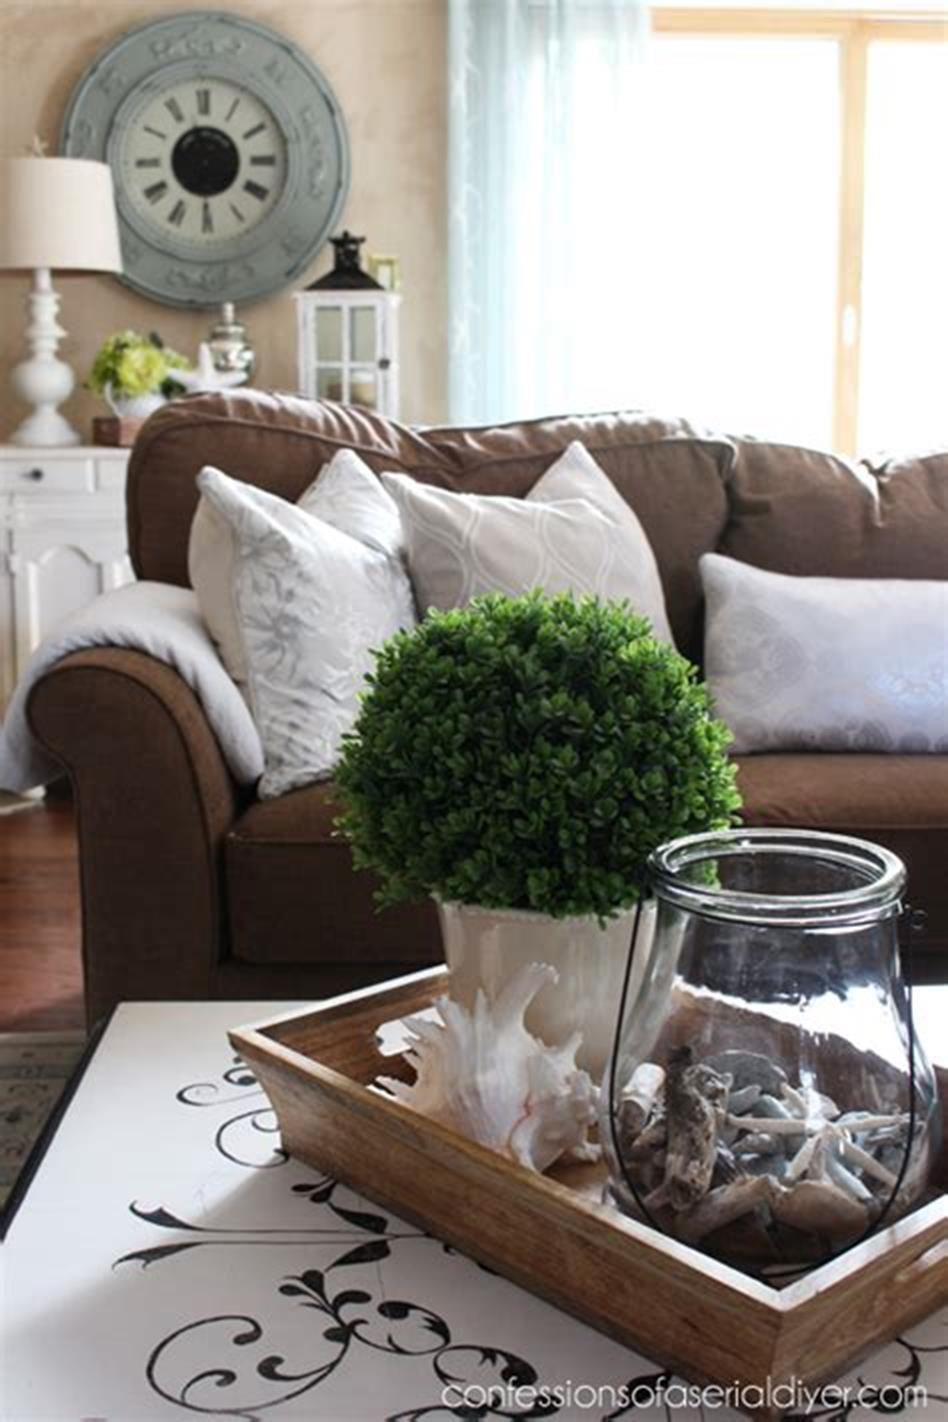 46 Awesome Coffee Table Tray Decor Ideas images